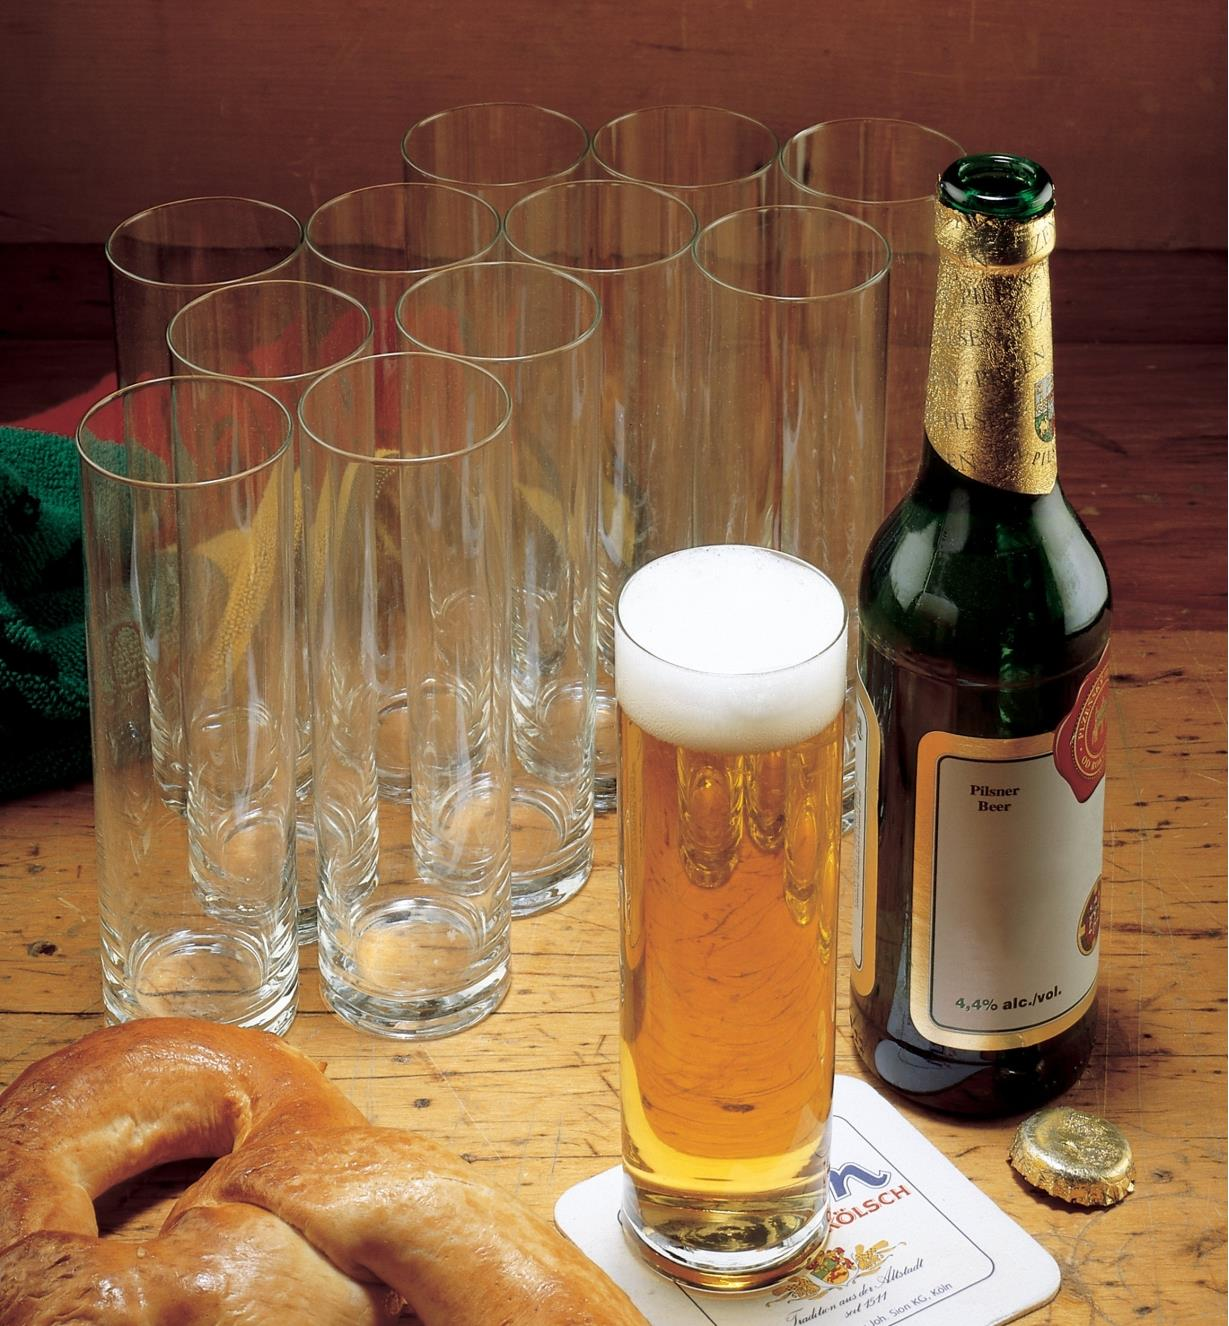 Set of 12 Kolsch glasses, one filled with beer next to a beer bottle